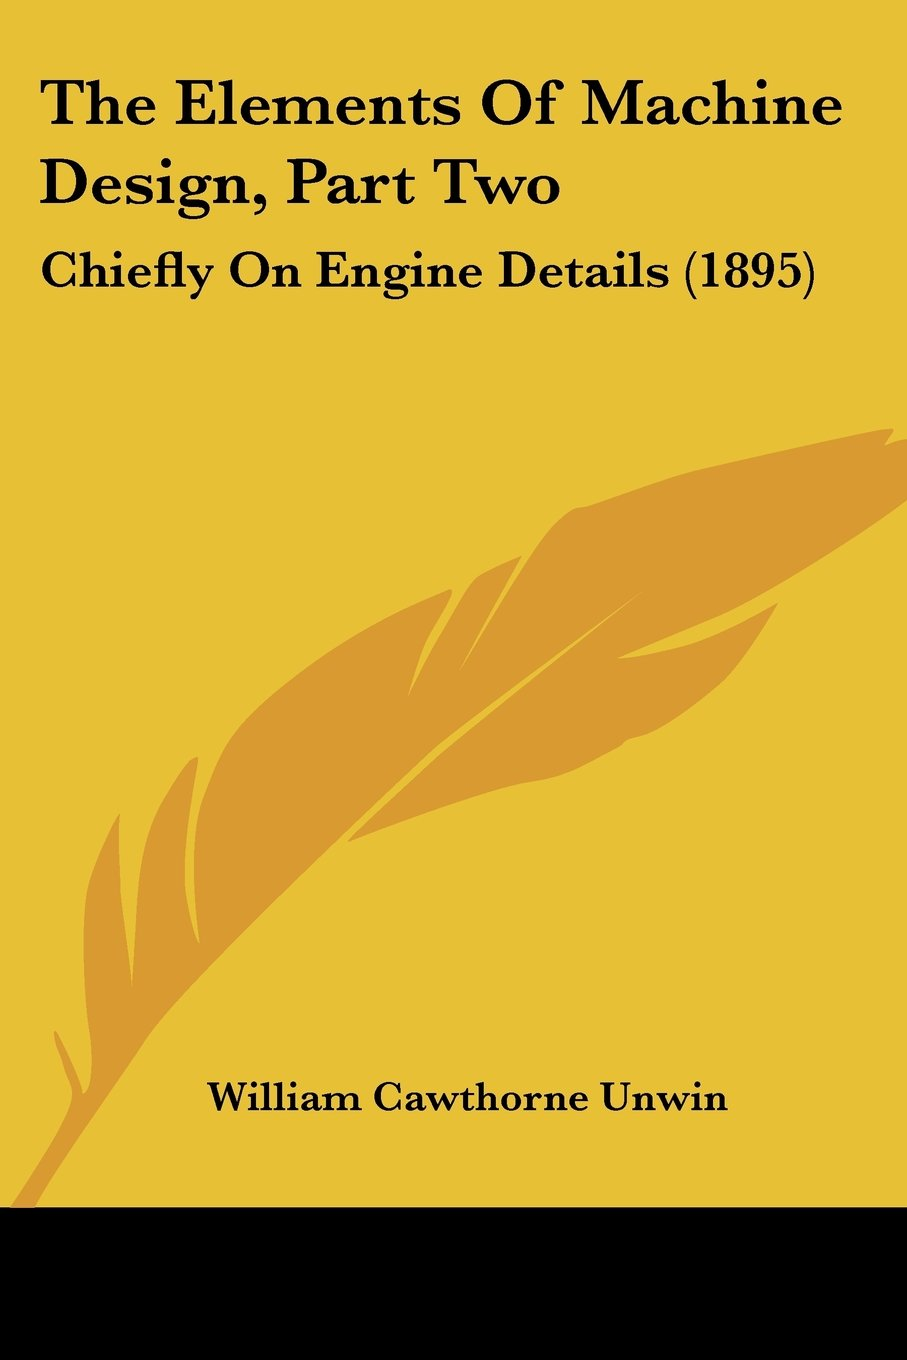 Download The Elements Of Machine Design, Part Two: Chiefly On Engine Details (1895) pdf